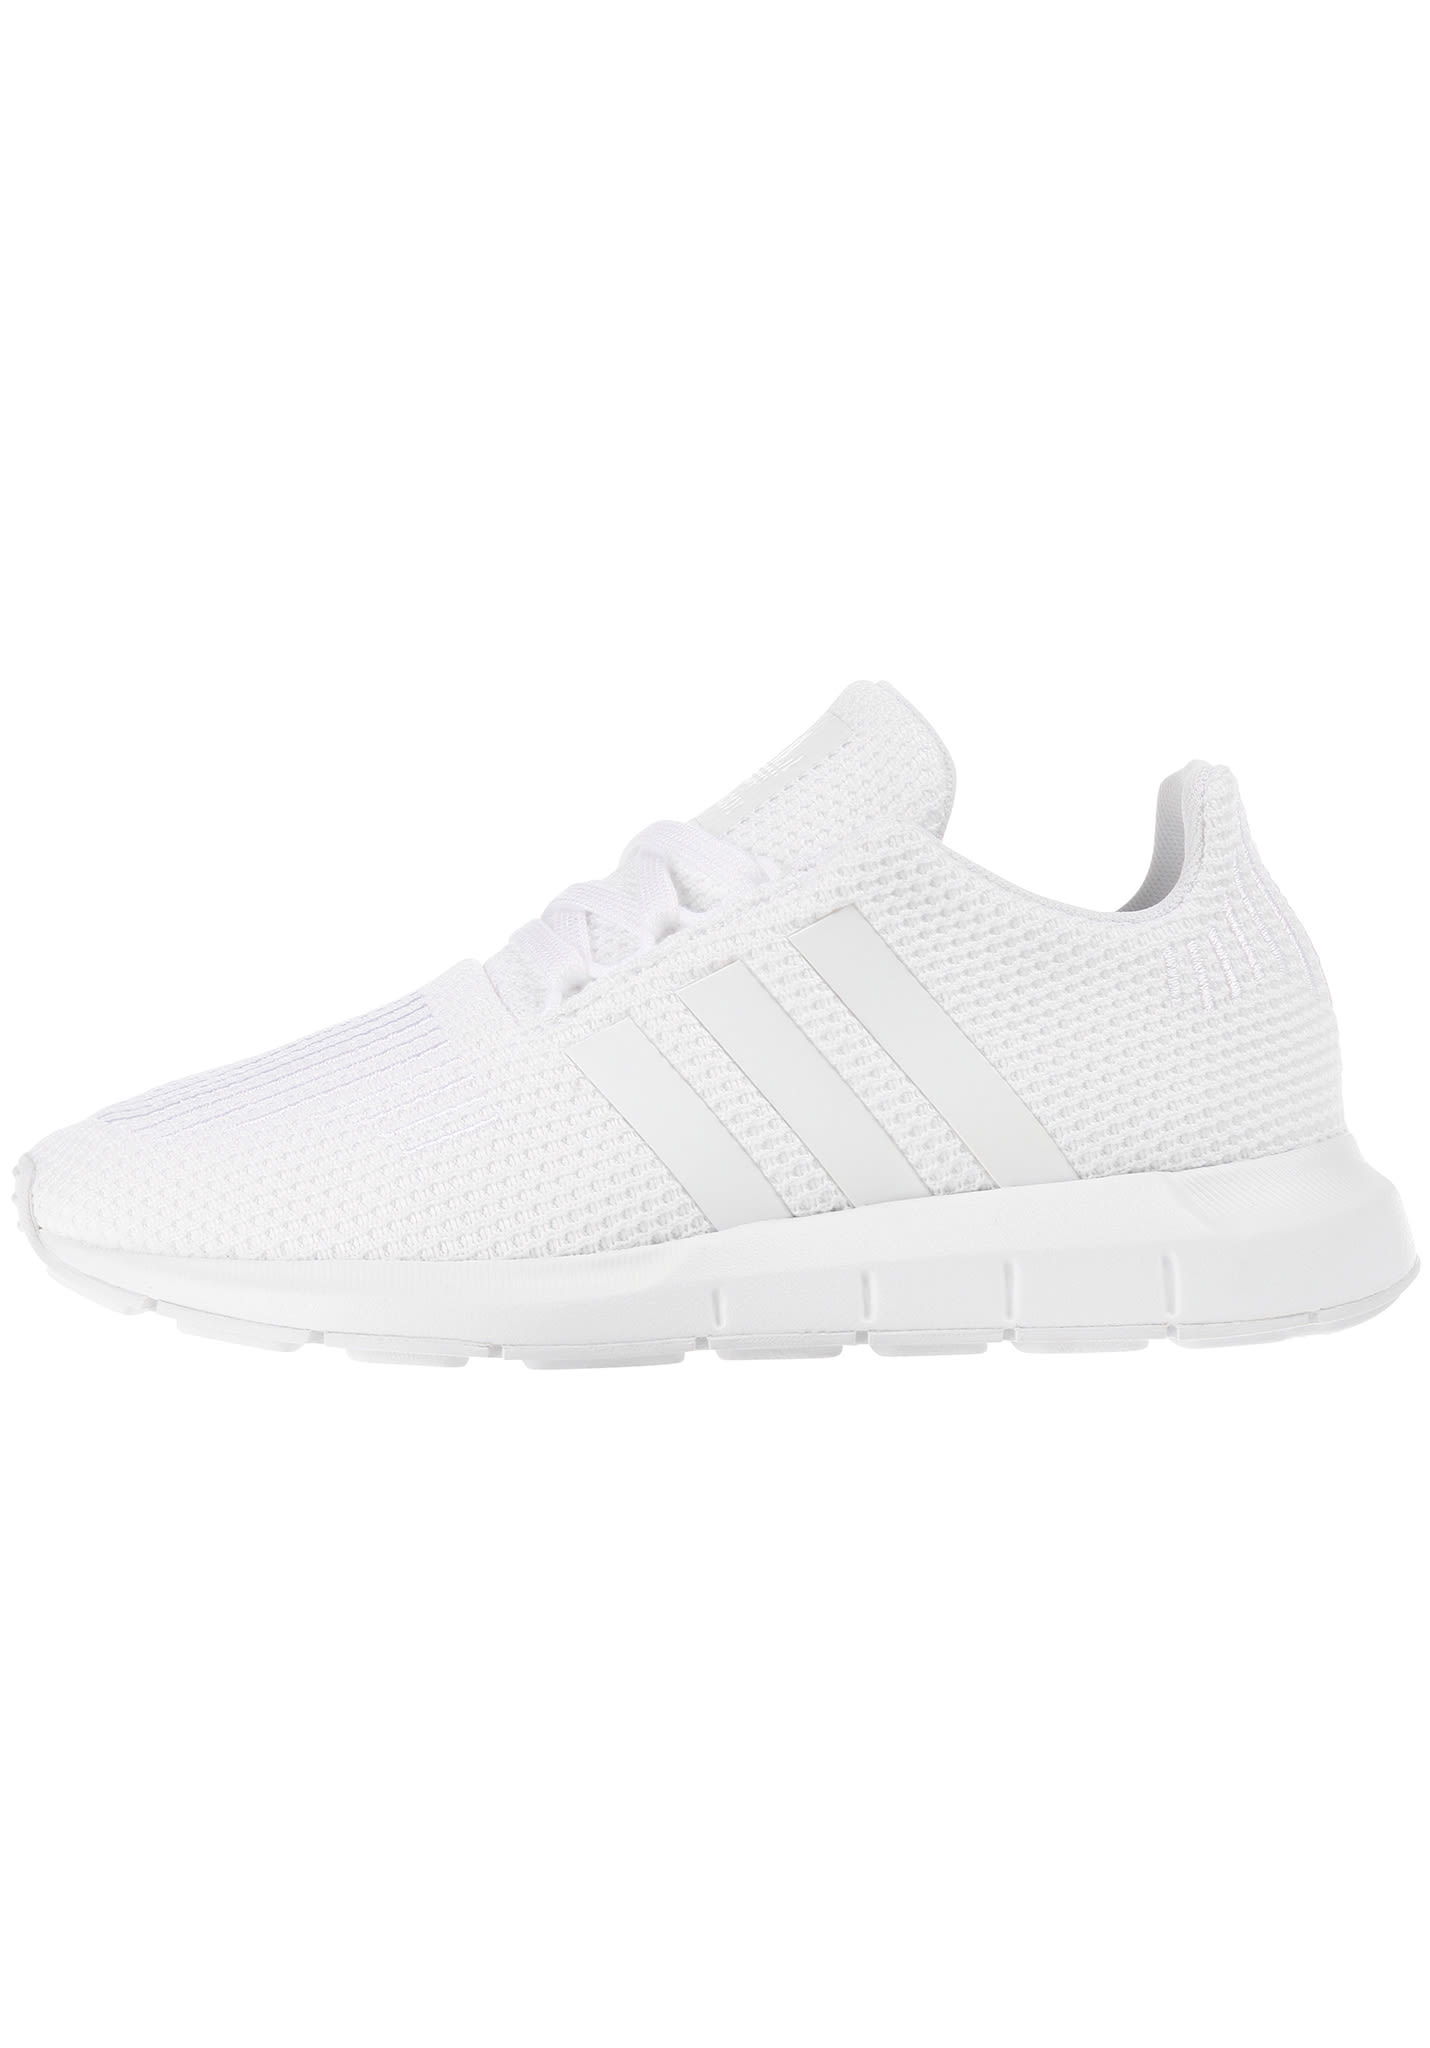 ab46166419a55 ADIDAS ORIGINALS Swift Run - Sneakers - White - Planet Sports